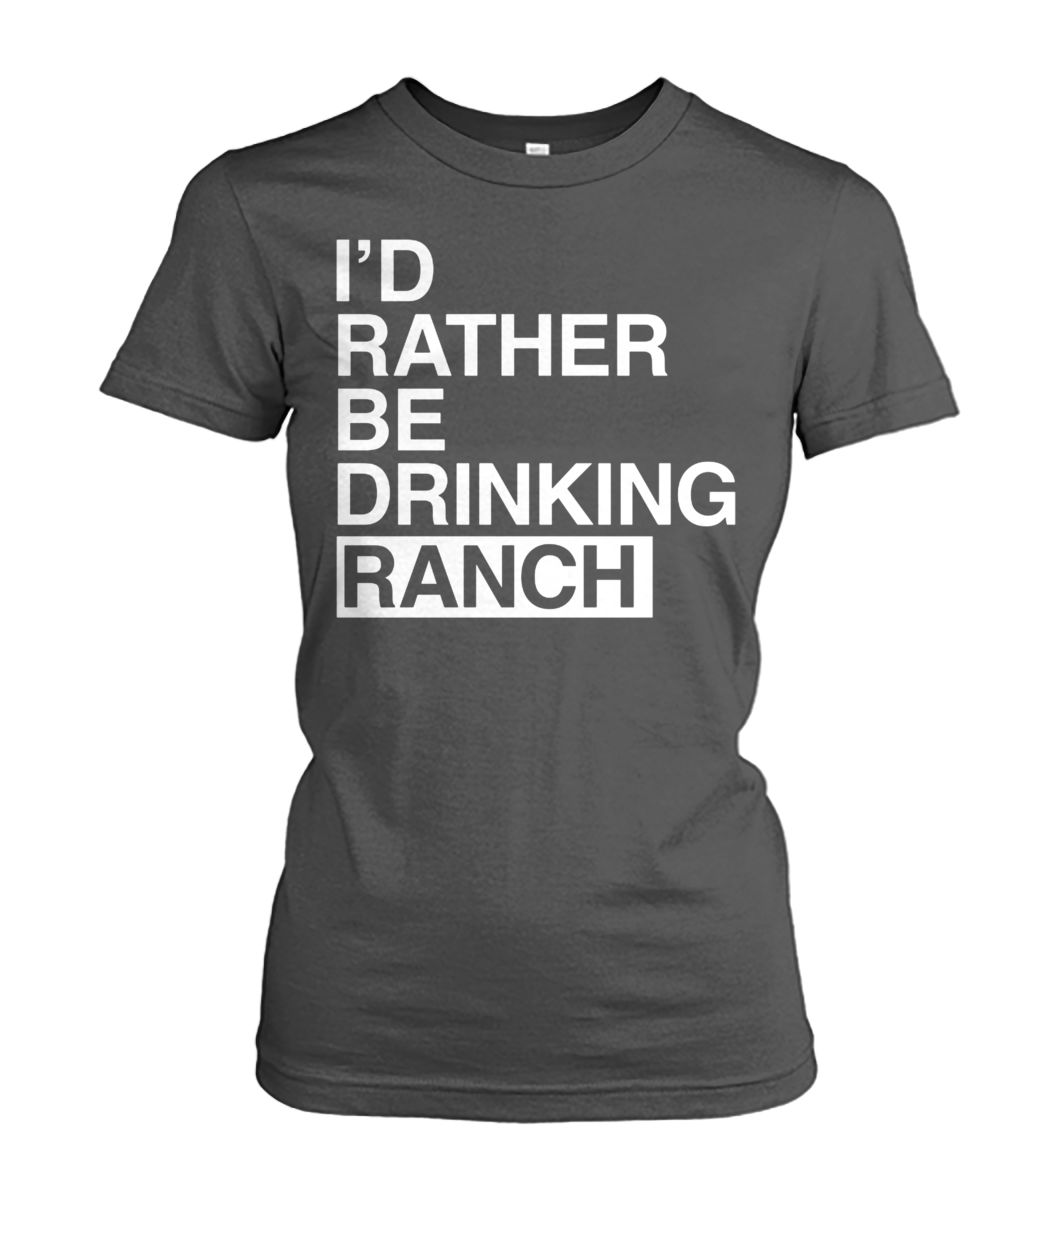 [Hot version] I'd rather be drinking ranch shirt